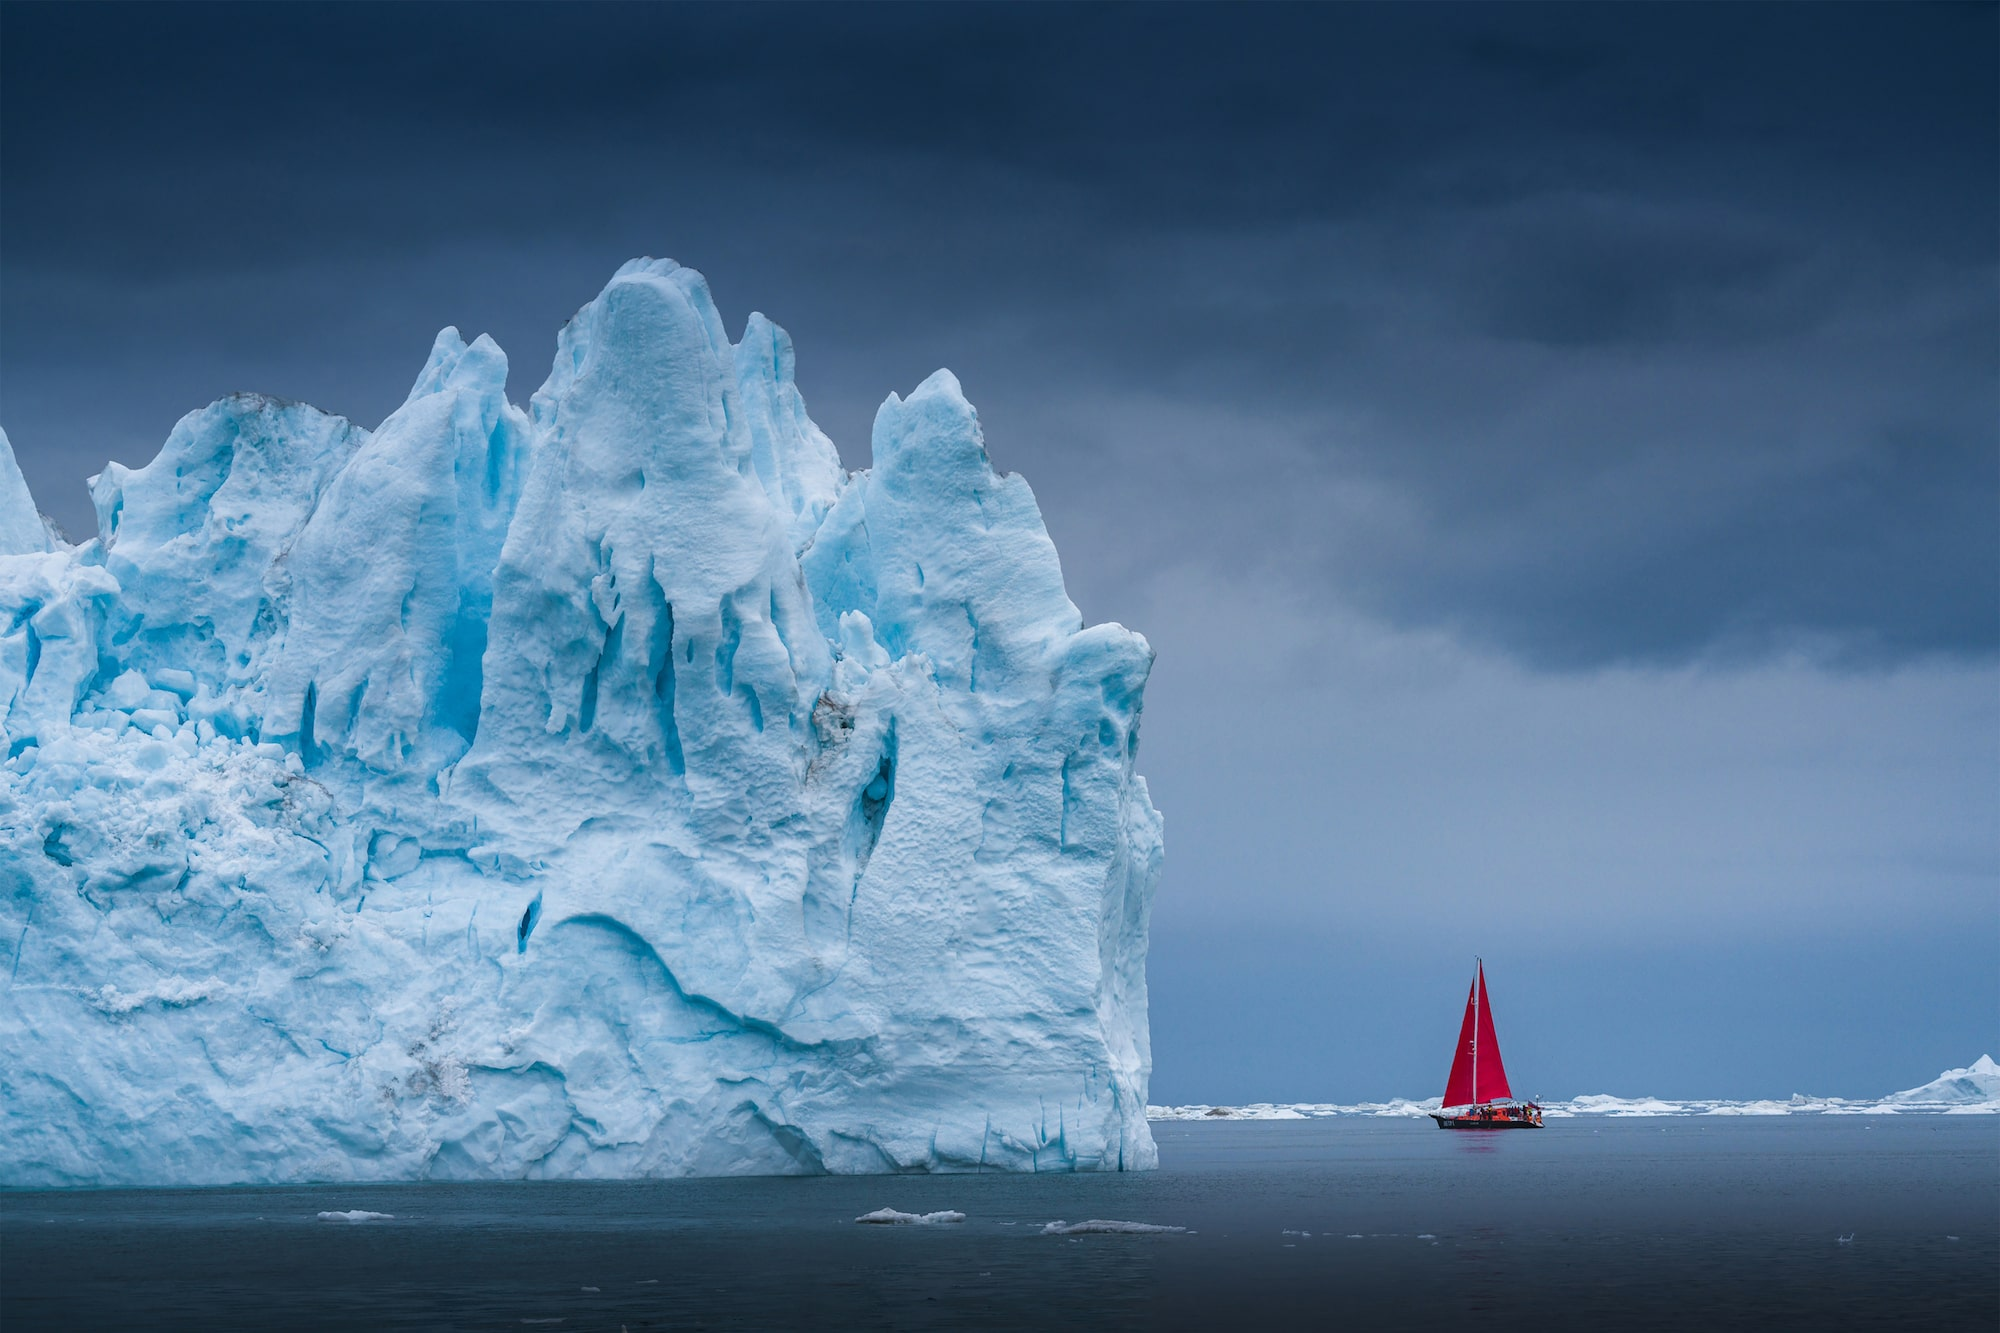 albert dros sony alpha A7RM4 boat with red sail sits next to a huge iceberg